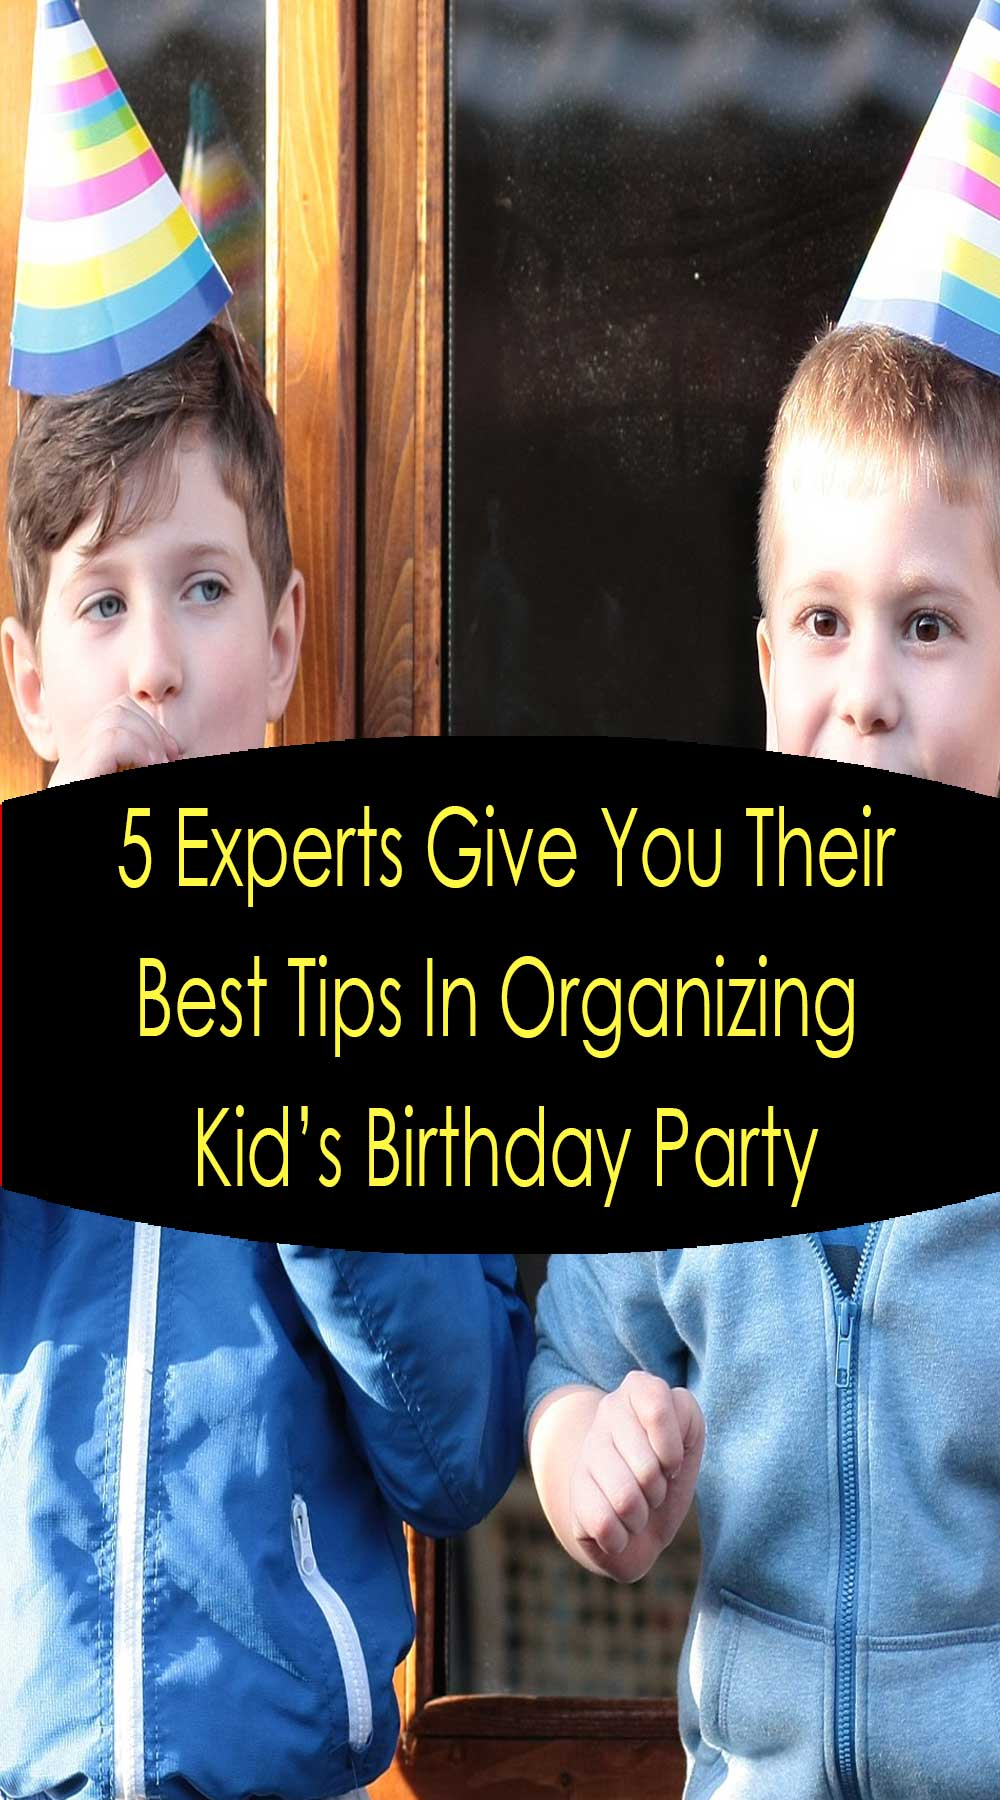 5 Experts Give You Their Best Tips In Organizing Kid's Birthday Party